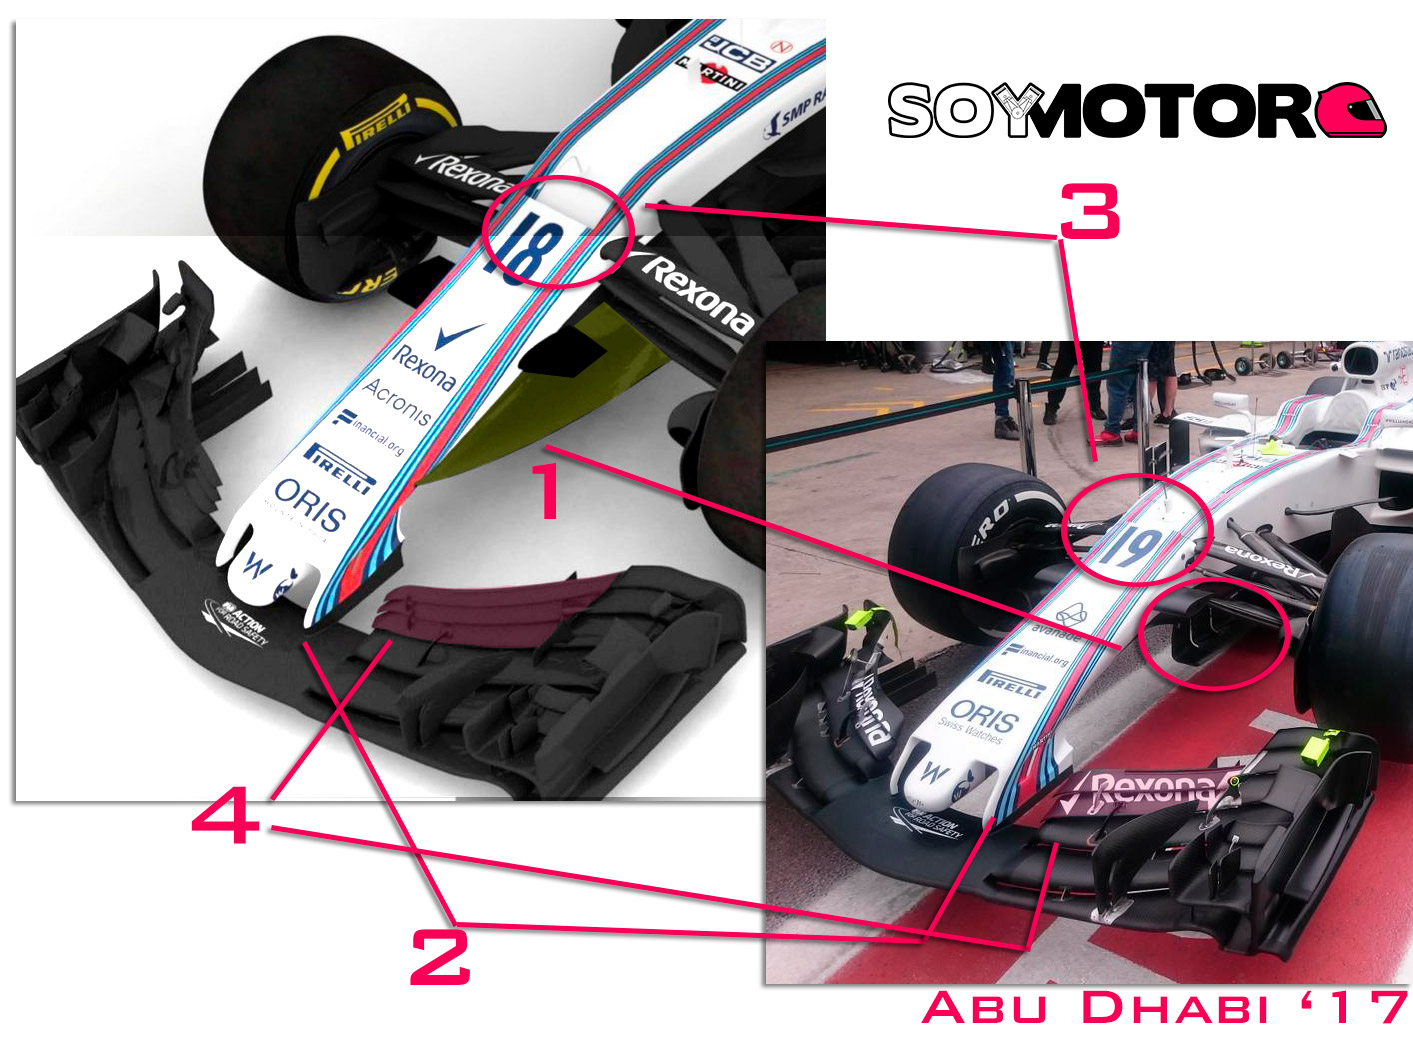 williams-parte-delantera-y-turning-vanes.jpg